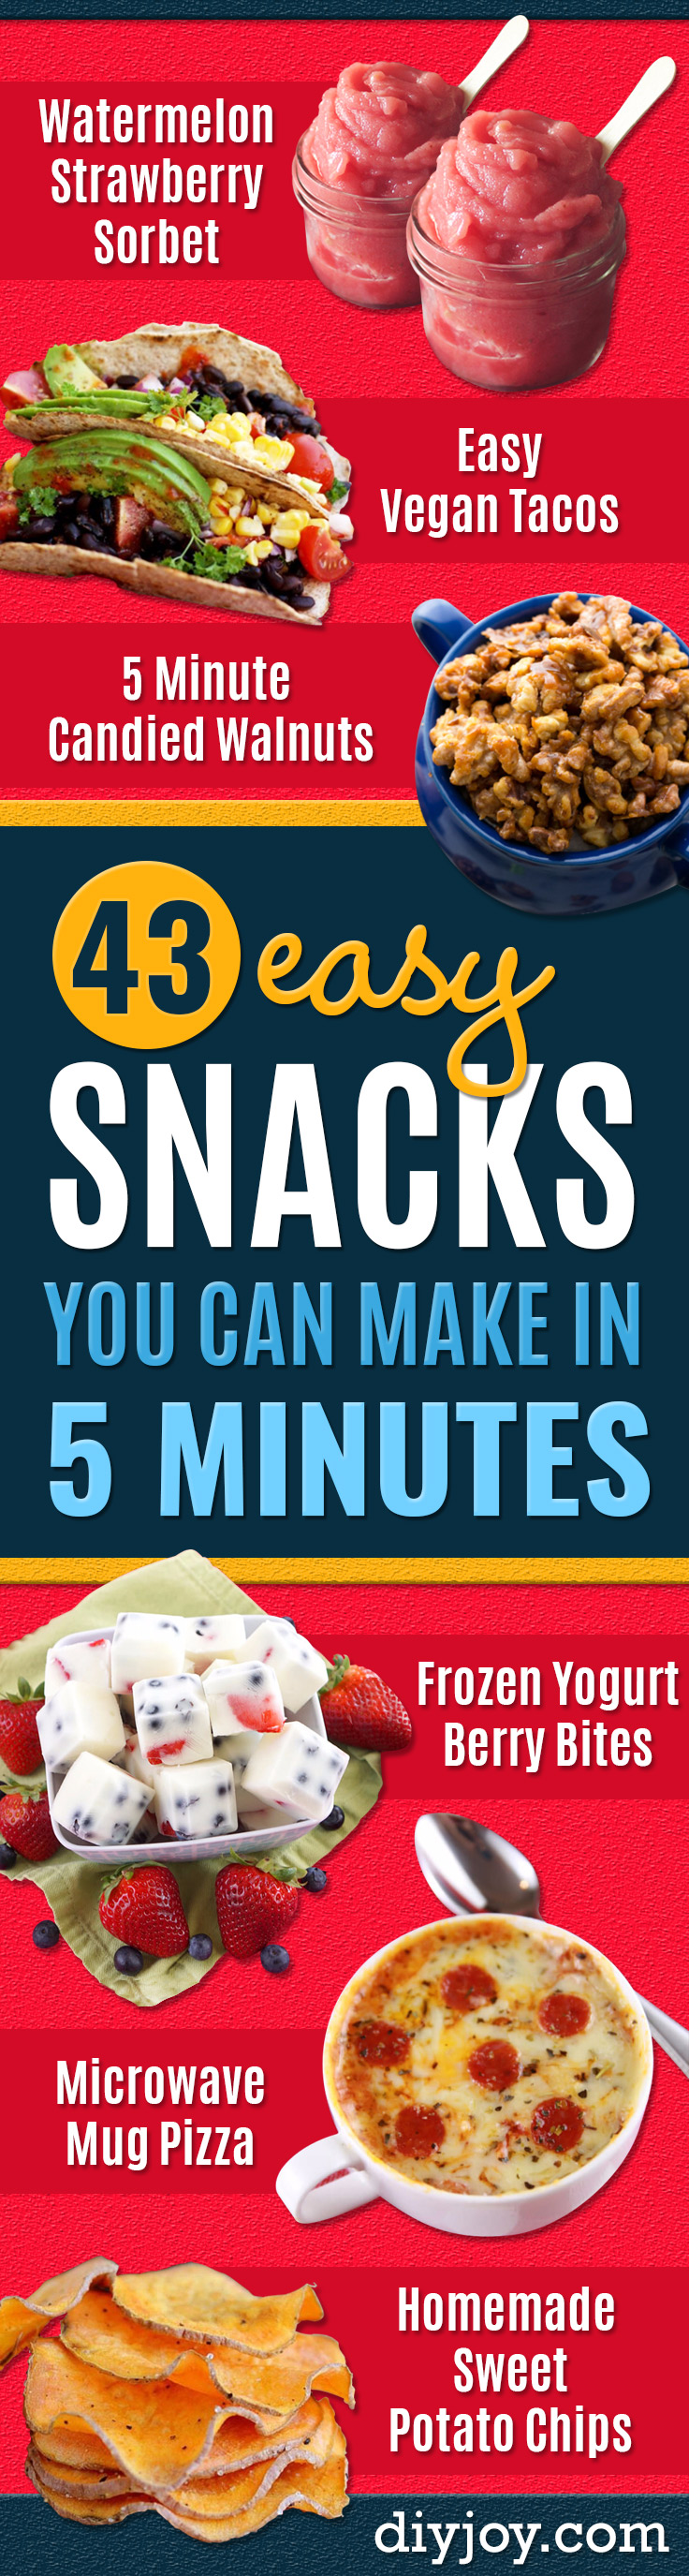 Easy Snacks You Can Make In Minutes - Quick   Recipes and Tricks for Making After Workout and After School Snack -   Fast Ideas for Instant Small Meals and Treats - No Bake, Microwave   and Simple Prep Makes Snacking Fun http://diyjoy.com/easy-snacks-  recipes